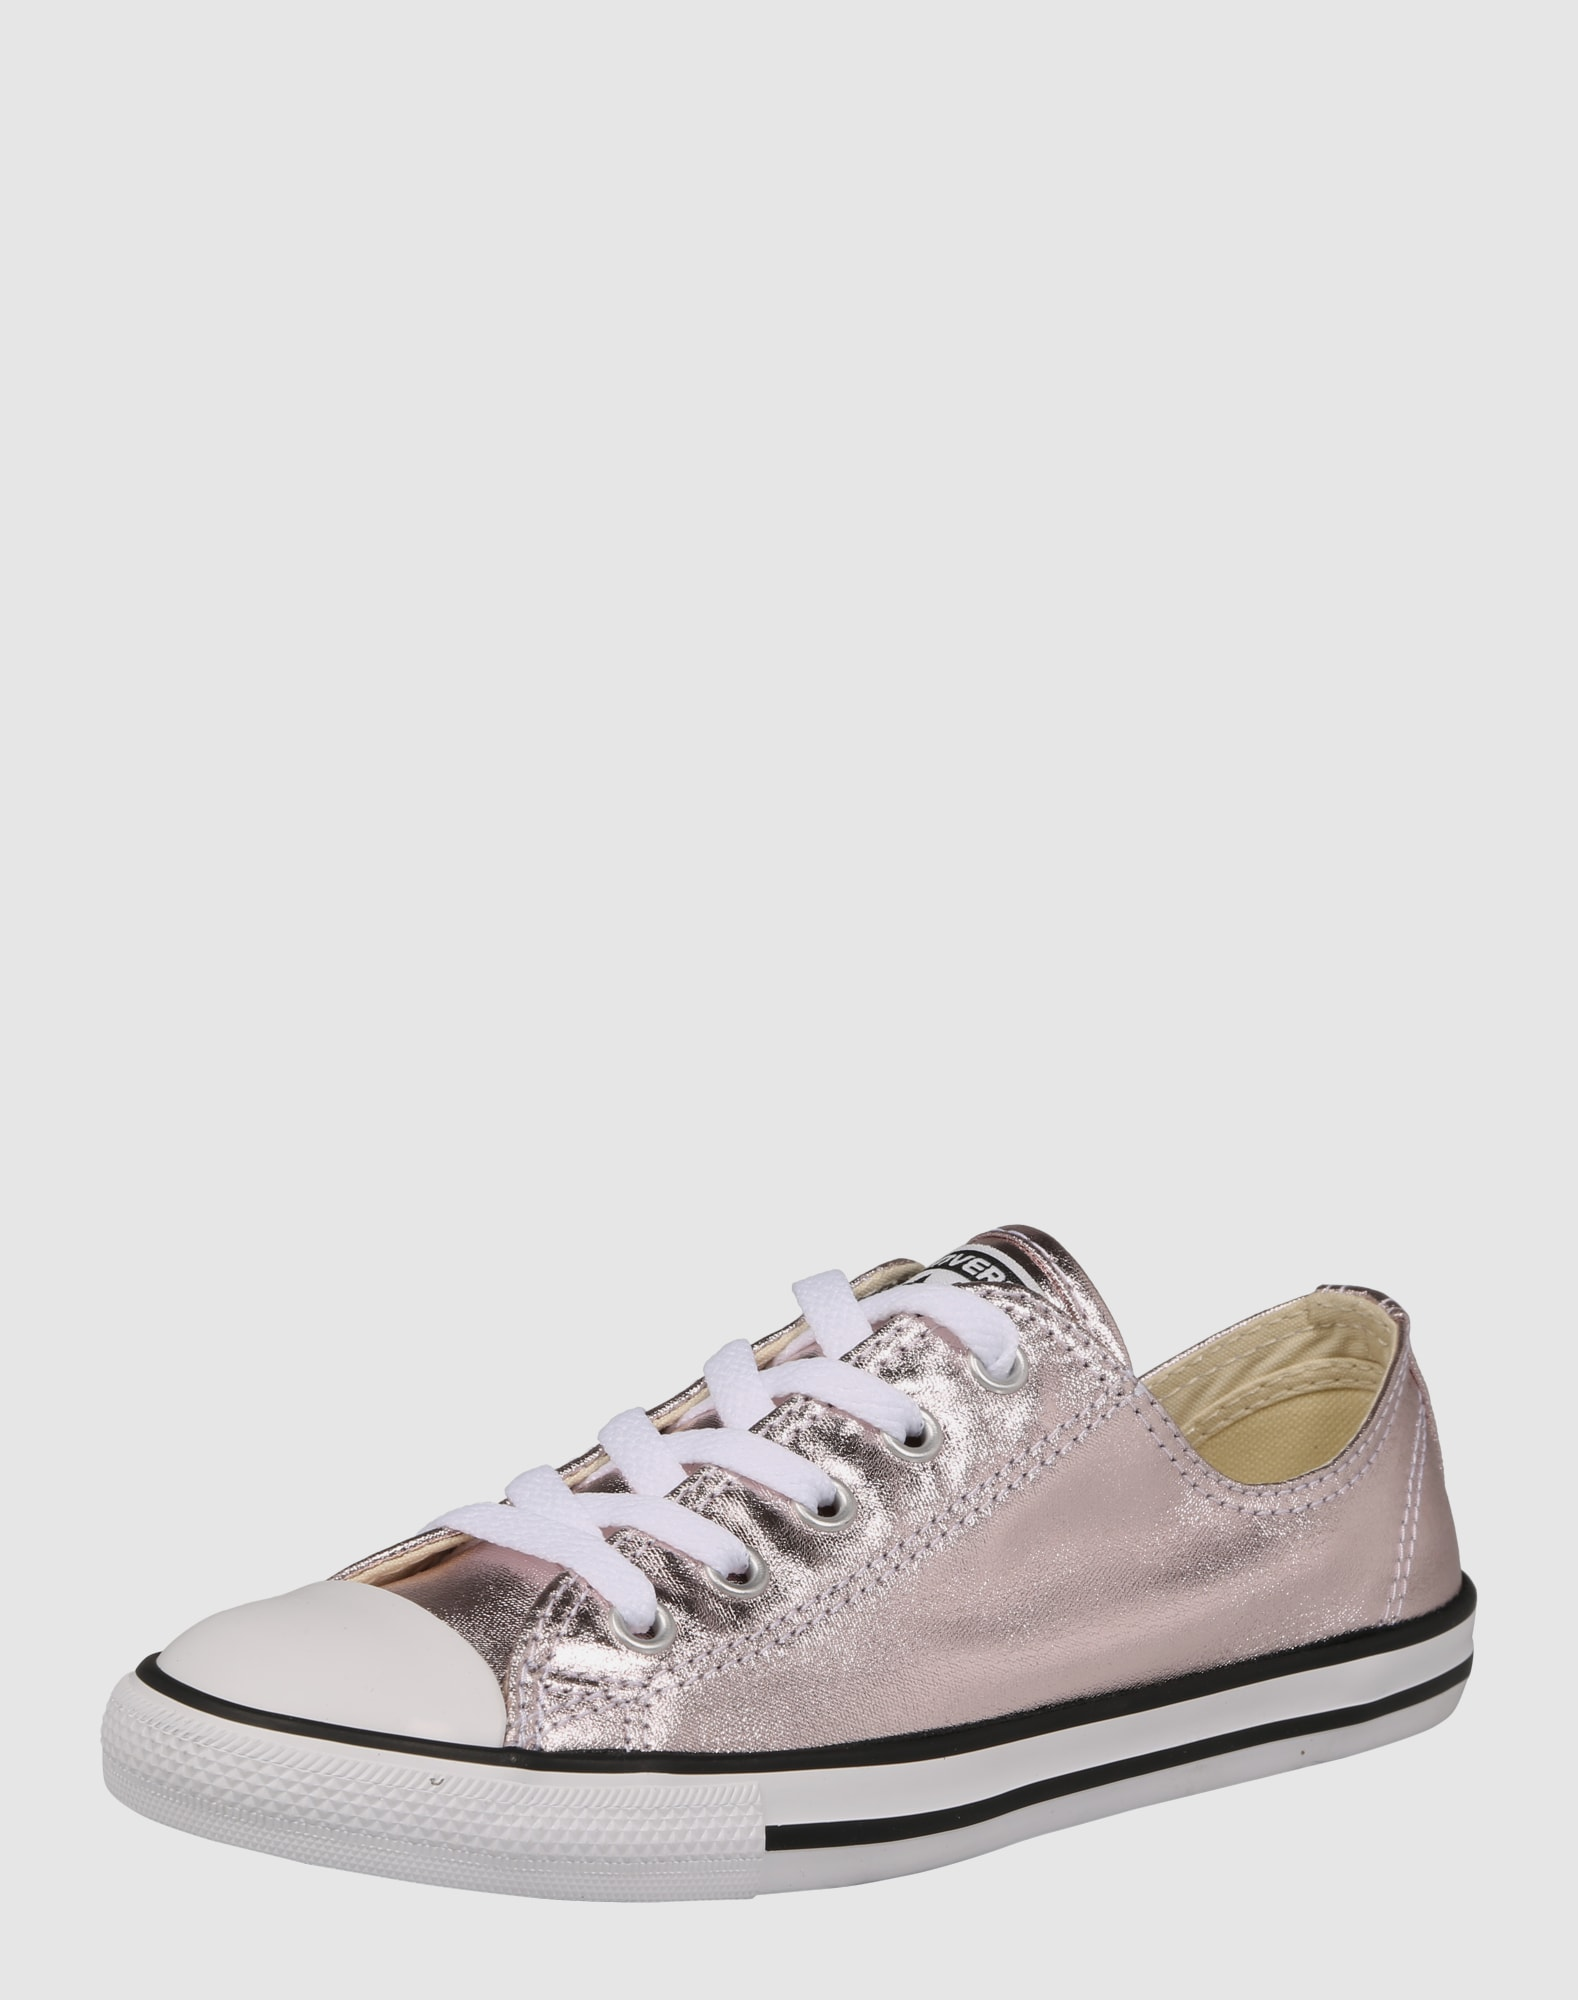 converse chucks in metallic optik in gold about you. Black Bedroom Furniture Sets. Home Design Ideas